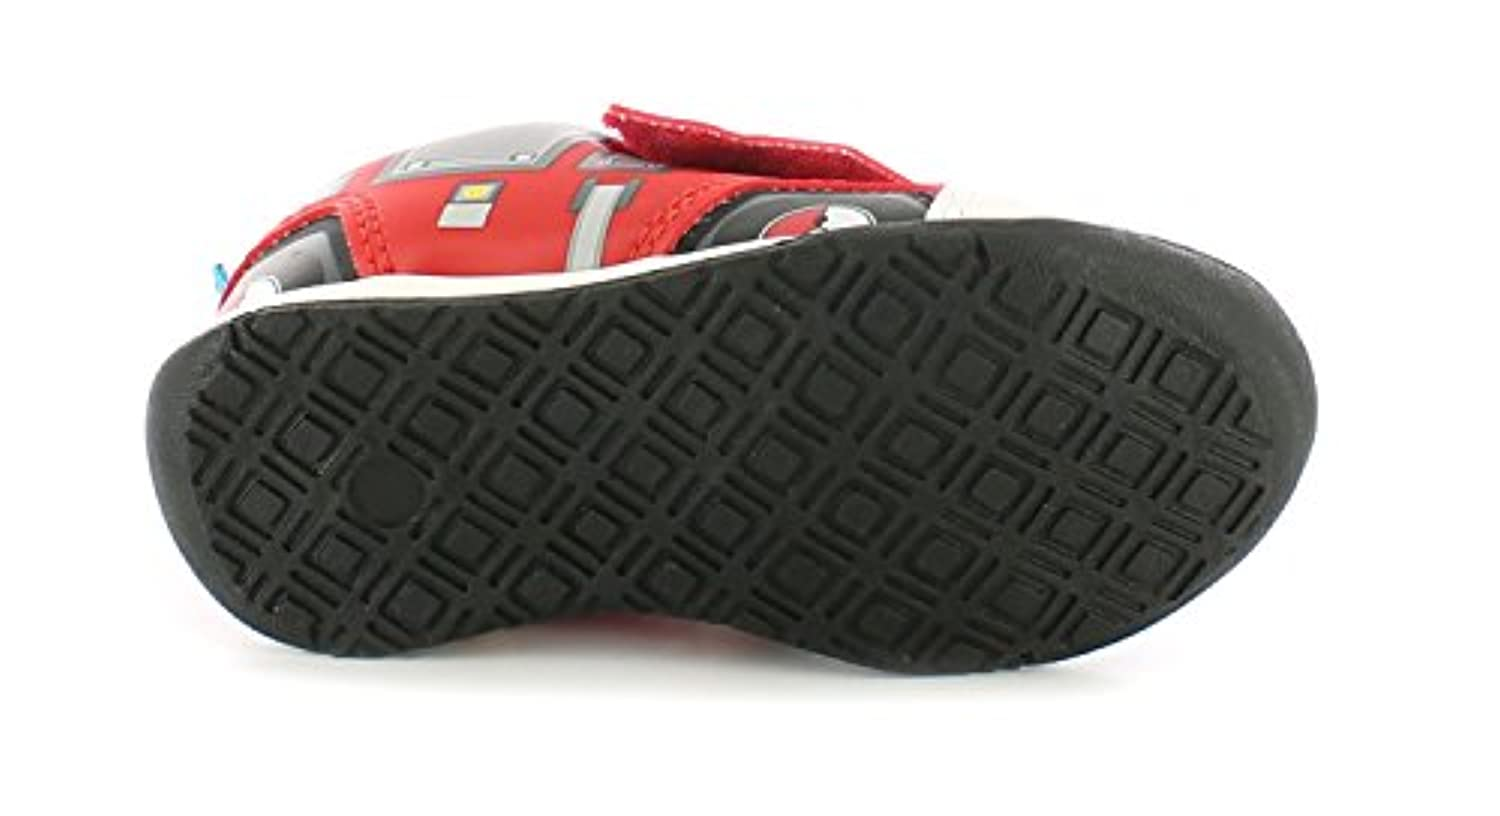 New Boys/Childrens Red Firemans Sam Touch Fastening Sports Trainers. - Red - UK SIZE 5